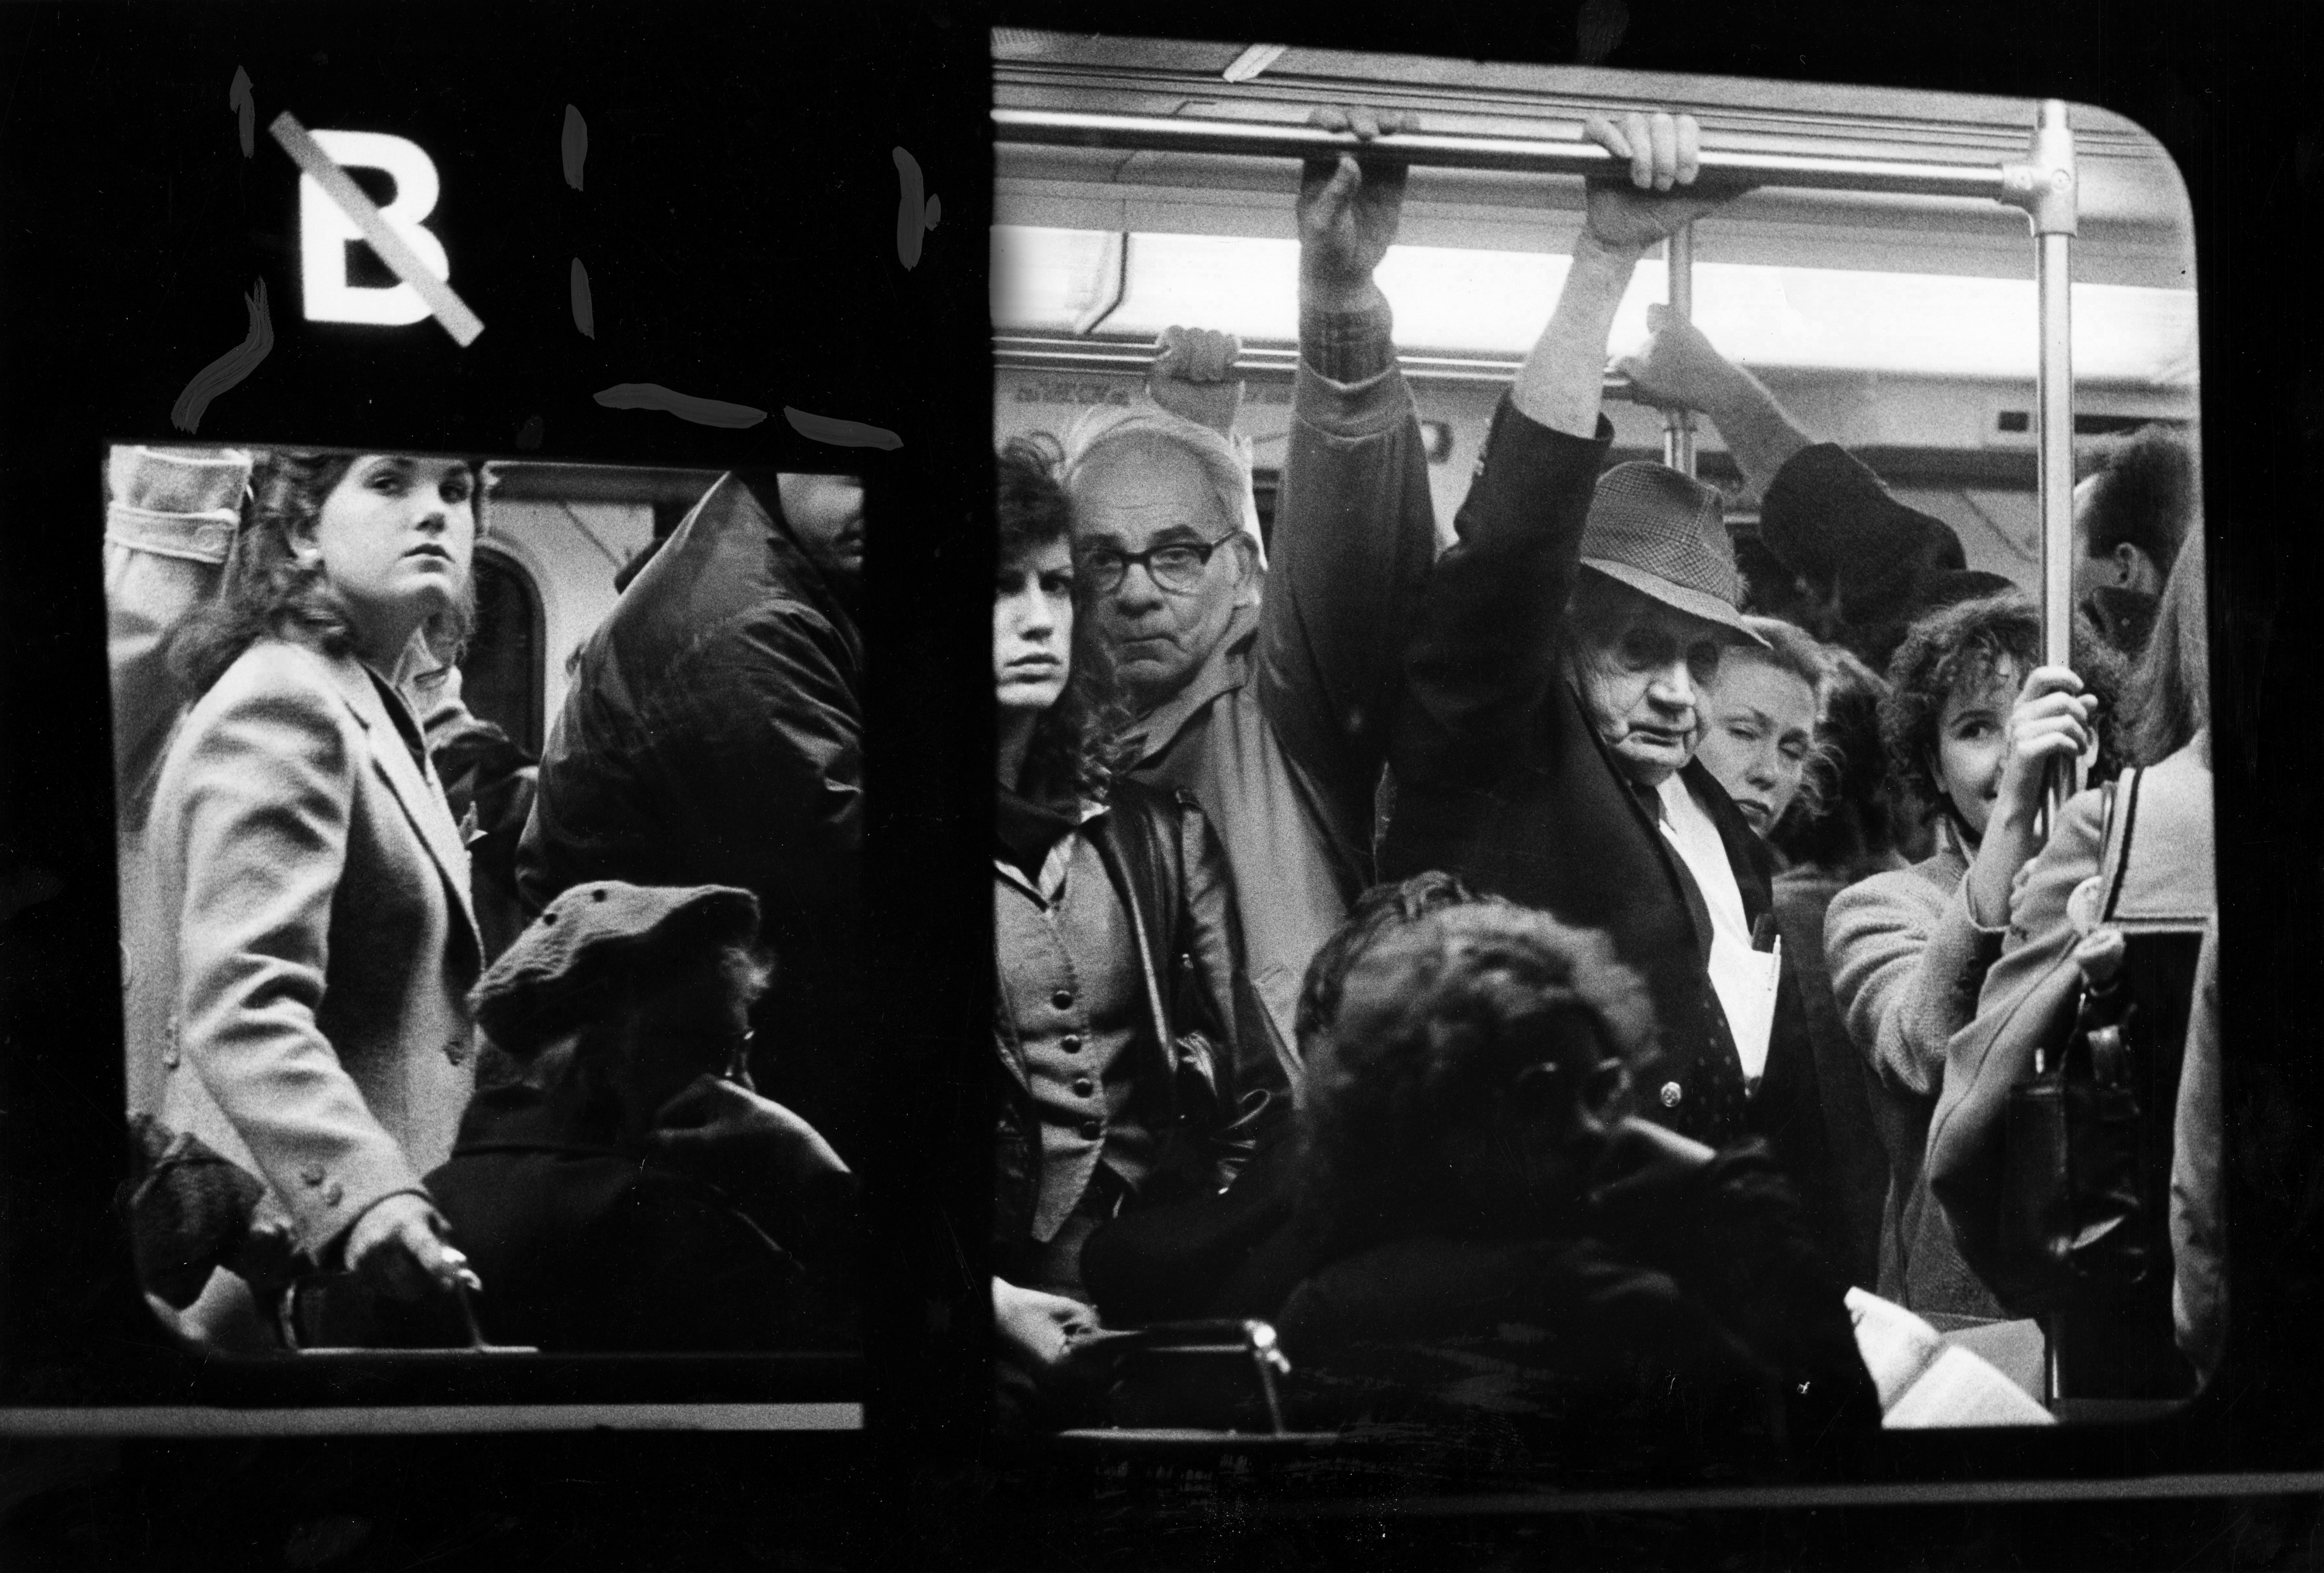 A crowded subway train as seen through one of its windows.